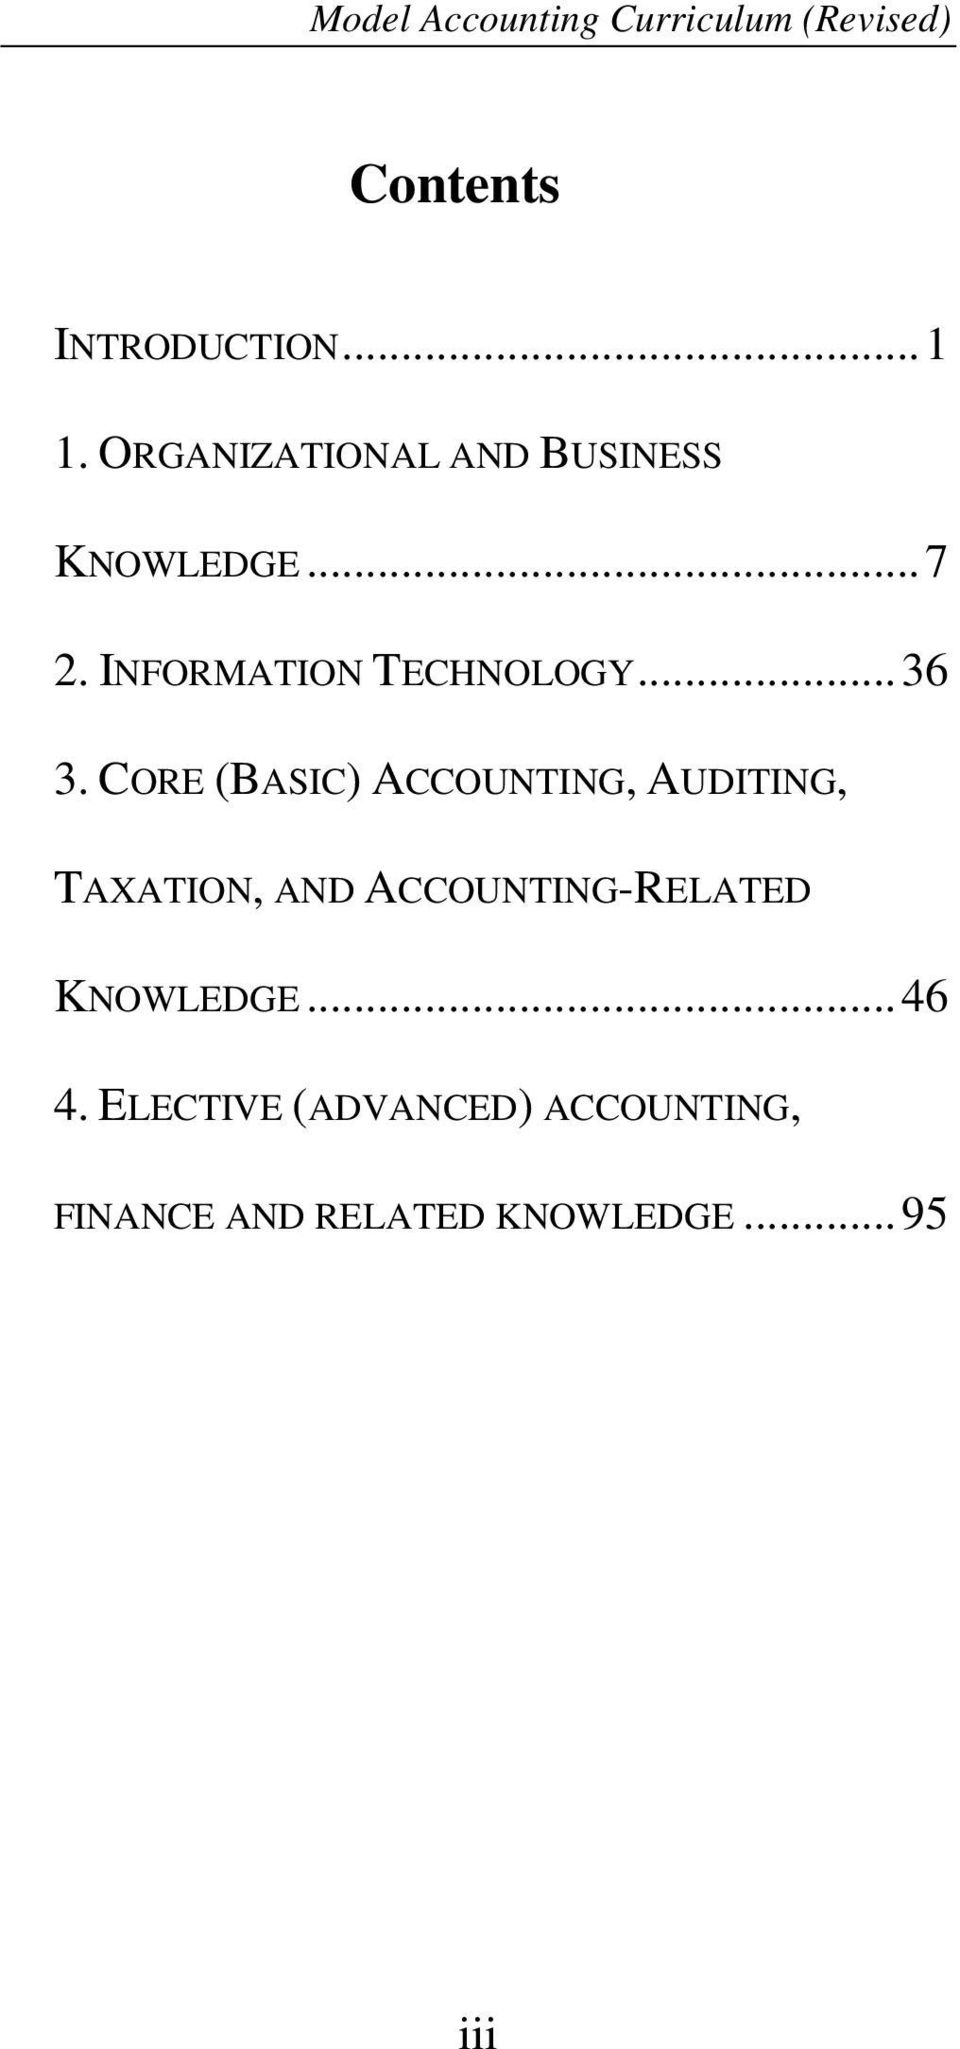 CORE (BASIC) ACCOUNTING, AUDITING, TAXATION, AND ACCOUNTING-RELATED